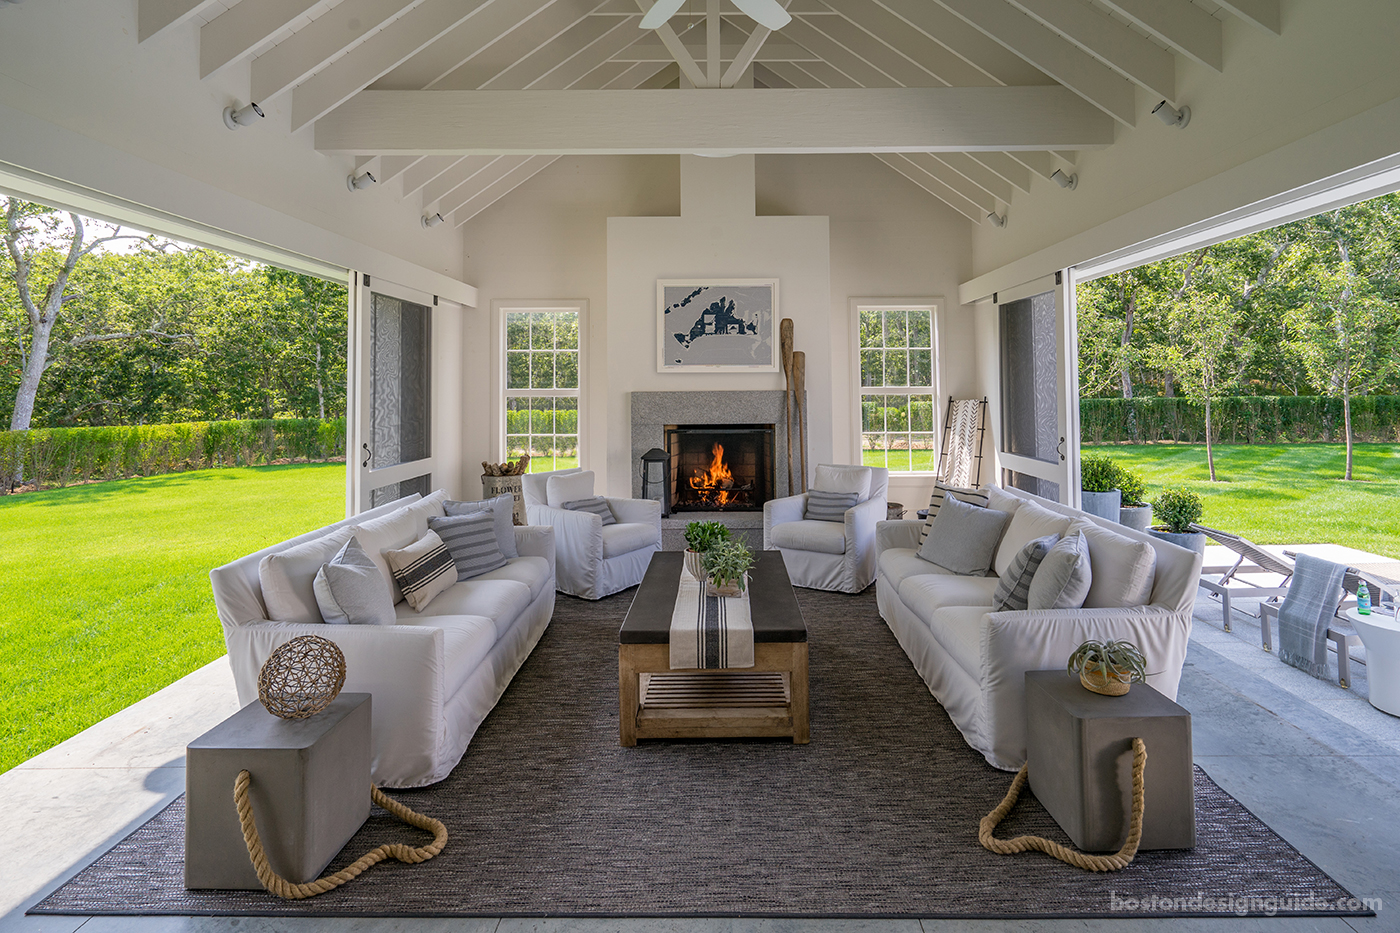 Coastal party barn designed by Martha's Vineyard Interior Design